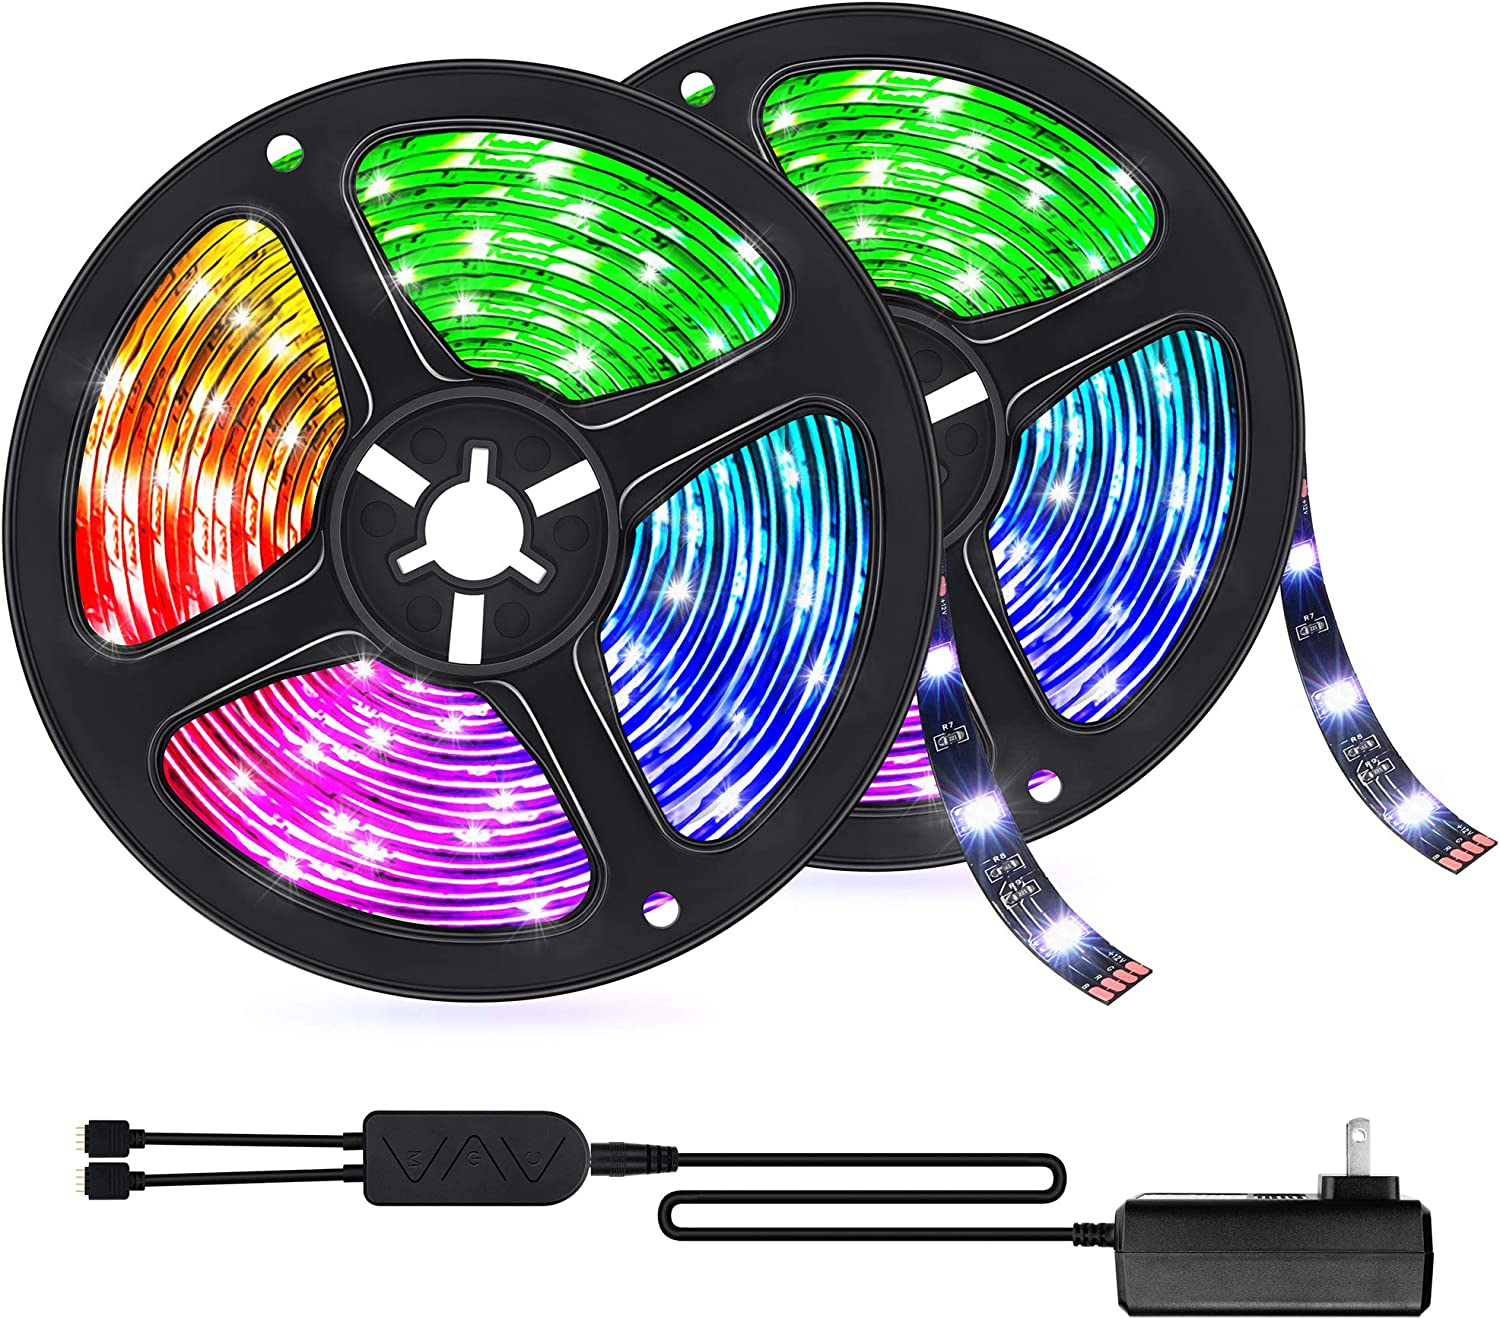 Smart WiFi LED Strip Light 32.8ft Work with Alexa Google Home, Voice APP Control TV Backlights Music Sync 16 Million Colors Changing RGB Light Strips Kit Gaming Tape Rope Light for Bedroom Bar Party